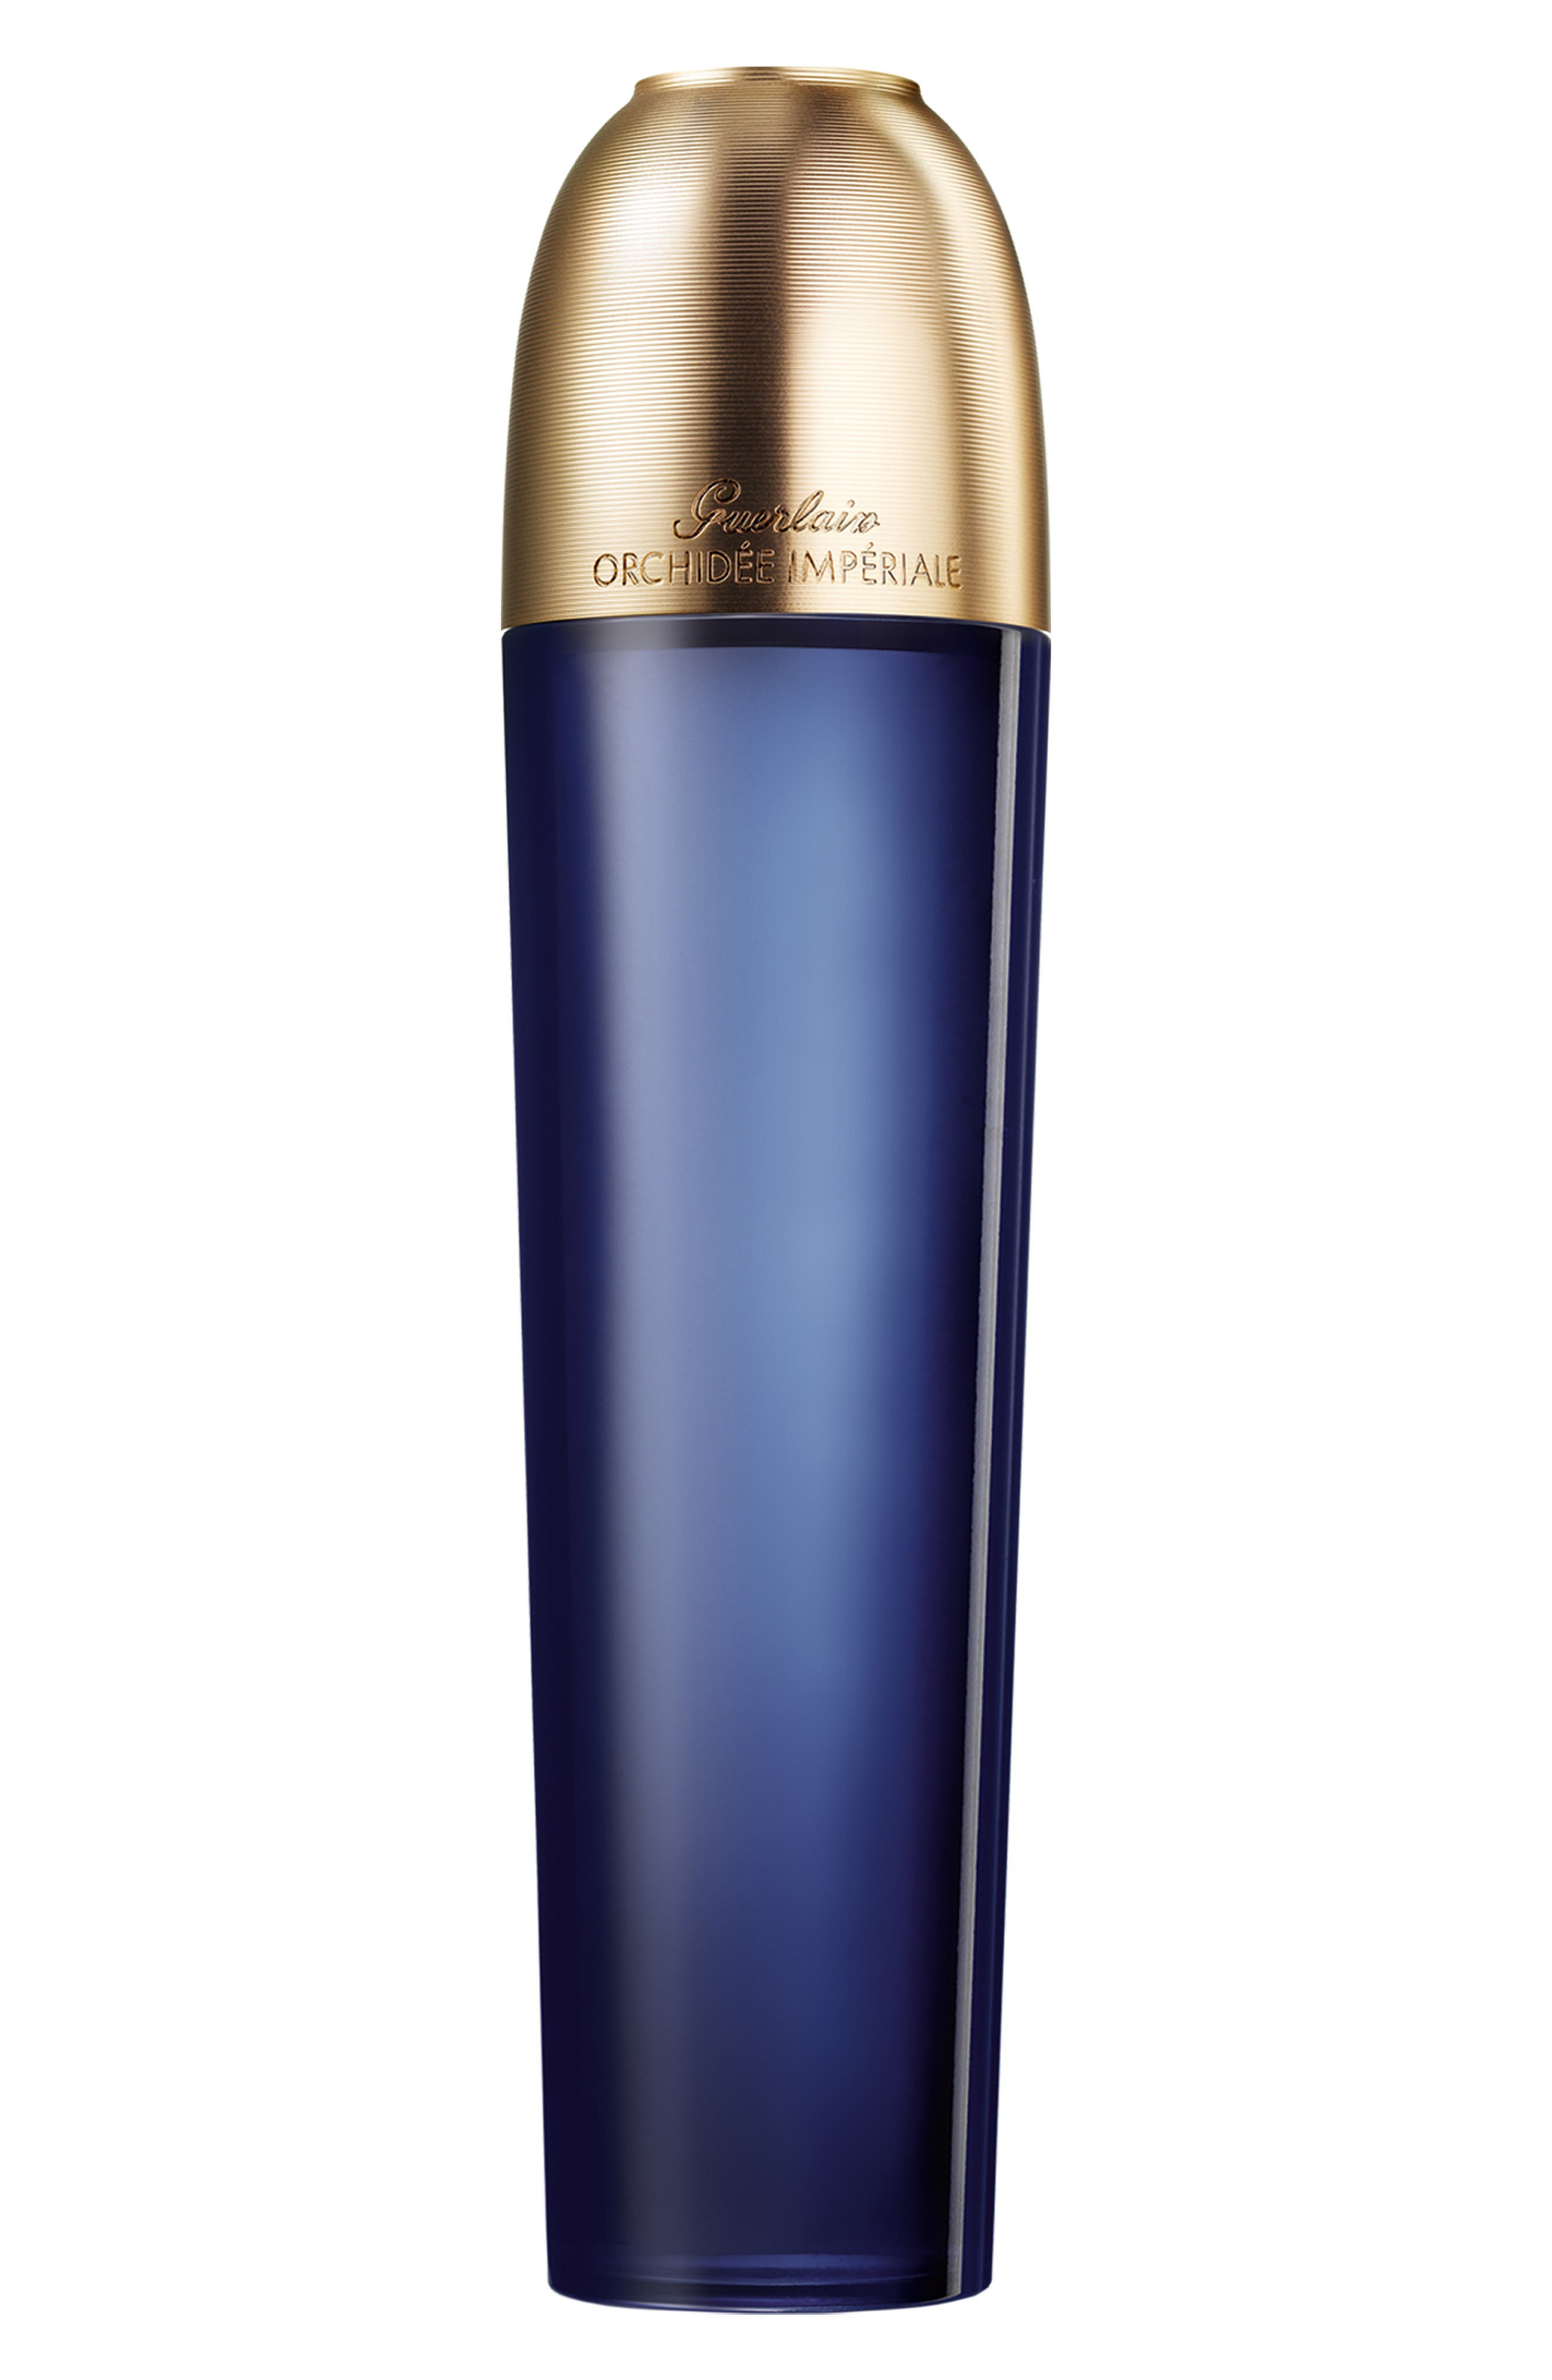 Orchidee Imperiale Essence-In-Lotion